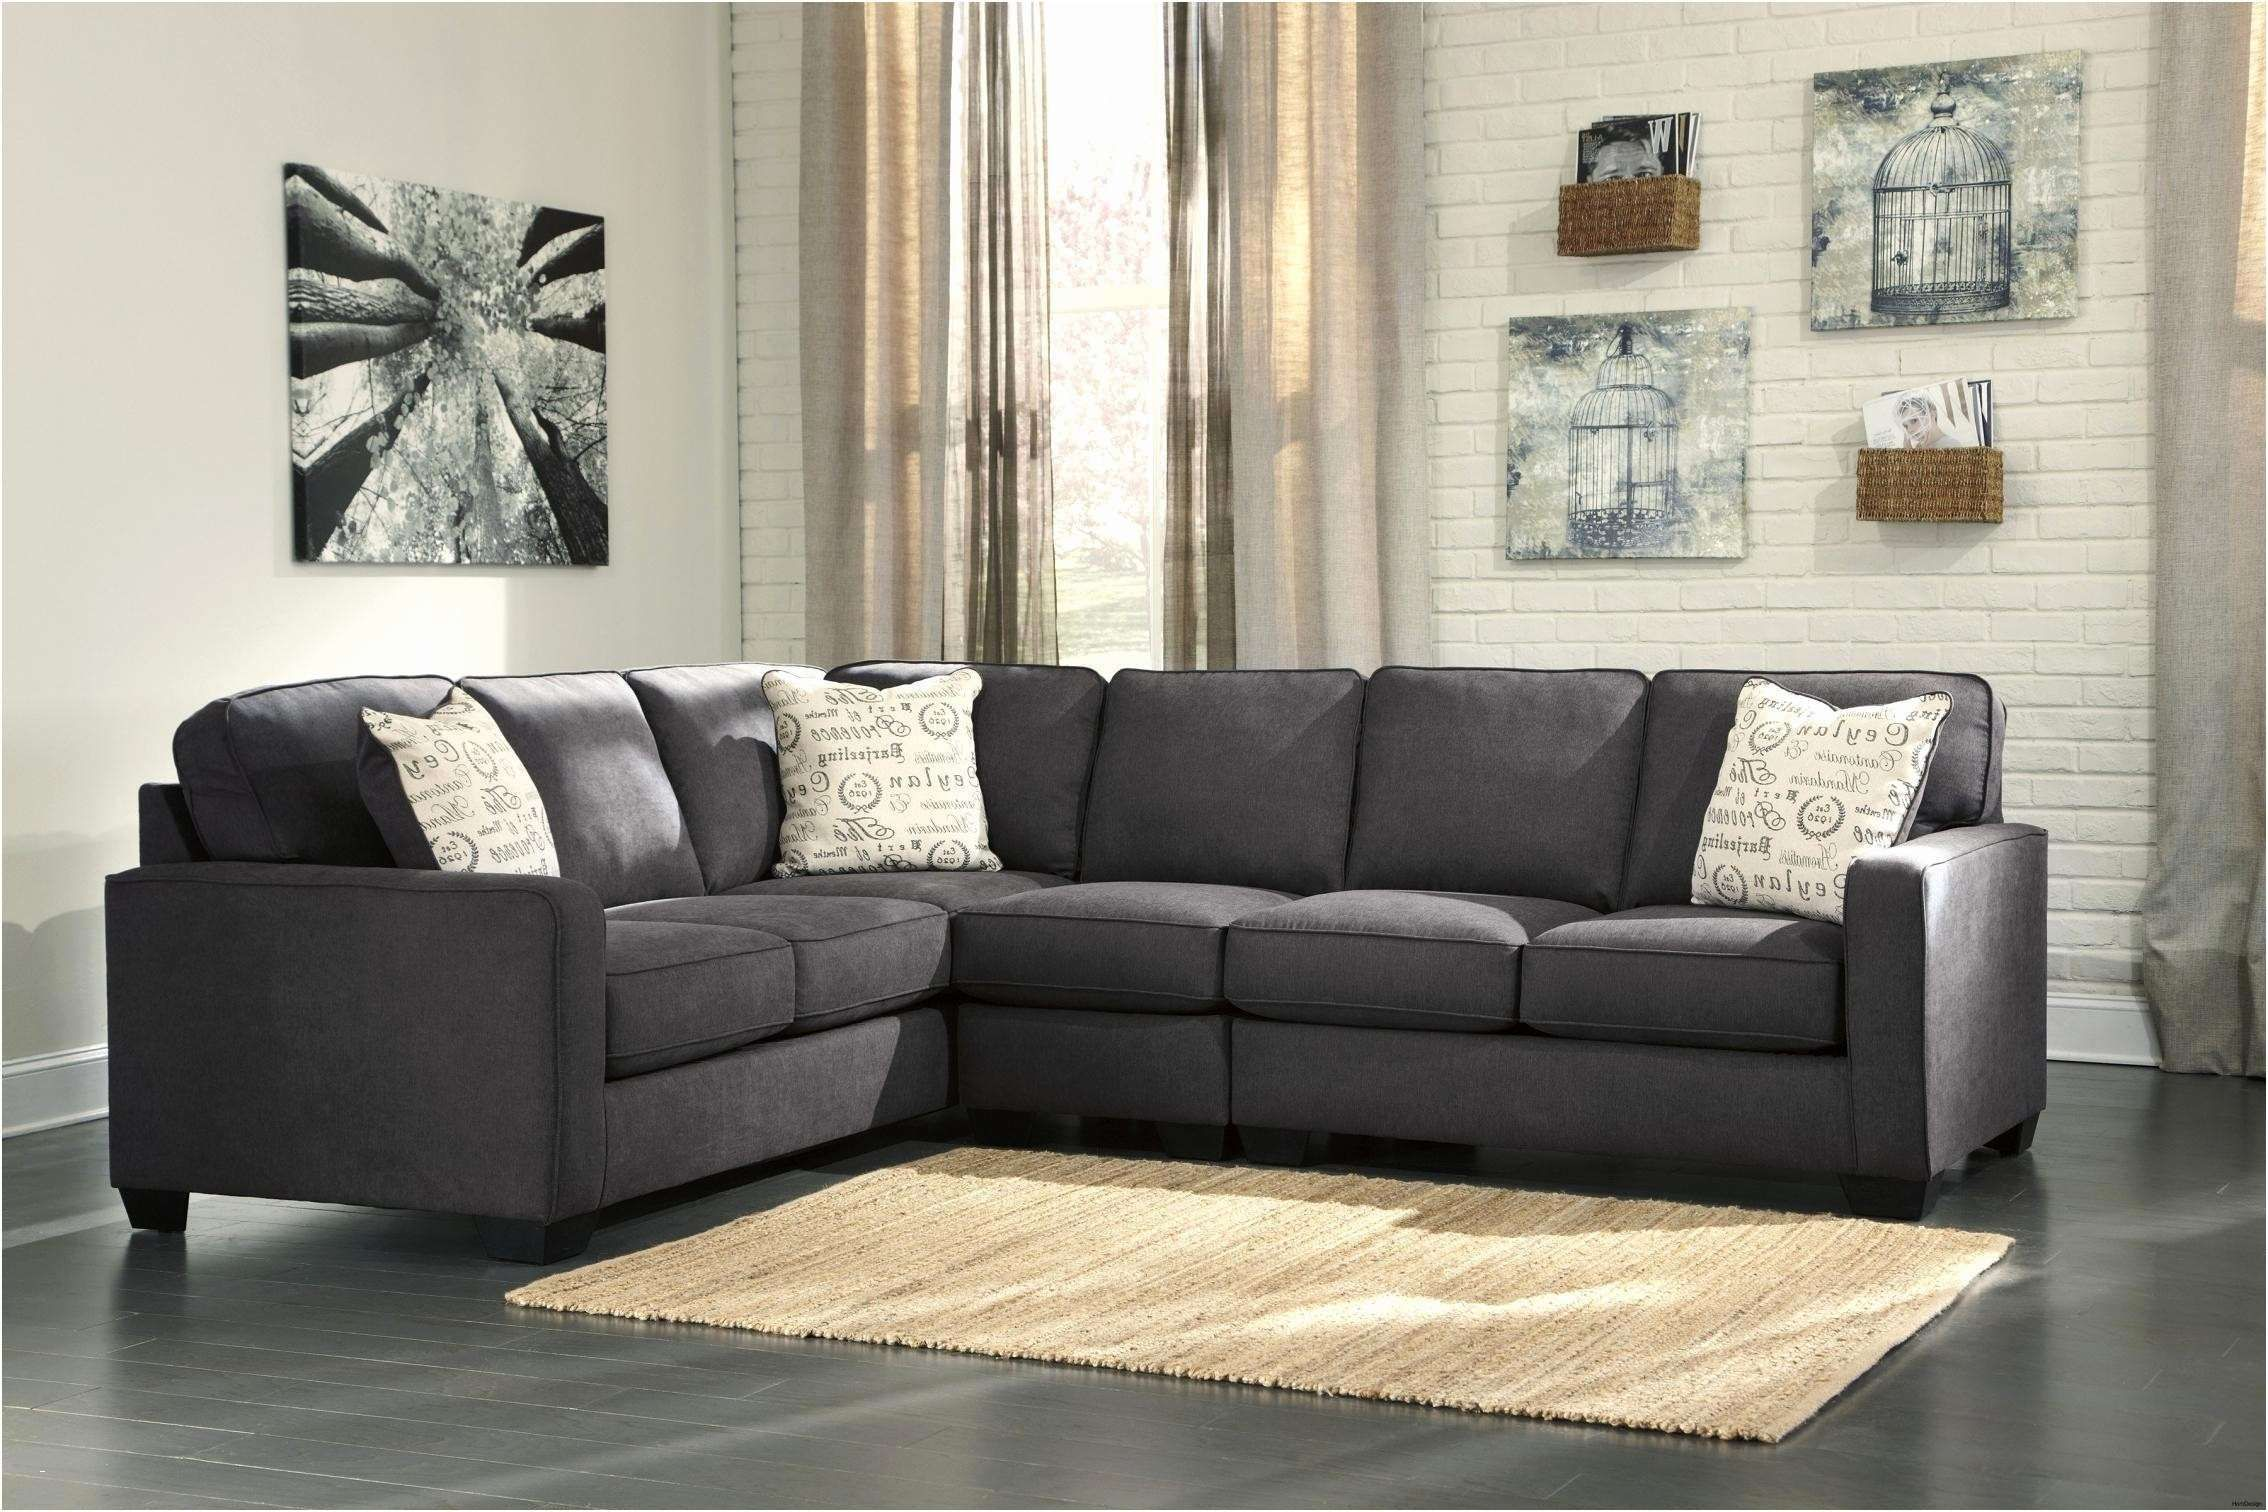 Wohnlandschaft Mit Federkern Und Bettfunktion L Form Couch Elegant L Sofa Awesome Hay Couch 0d Archives Sofa Ideas Woh Living Room Sofa Sofa Design Fancy Living Rooms